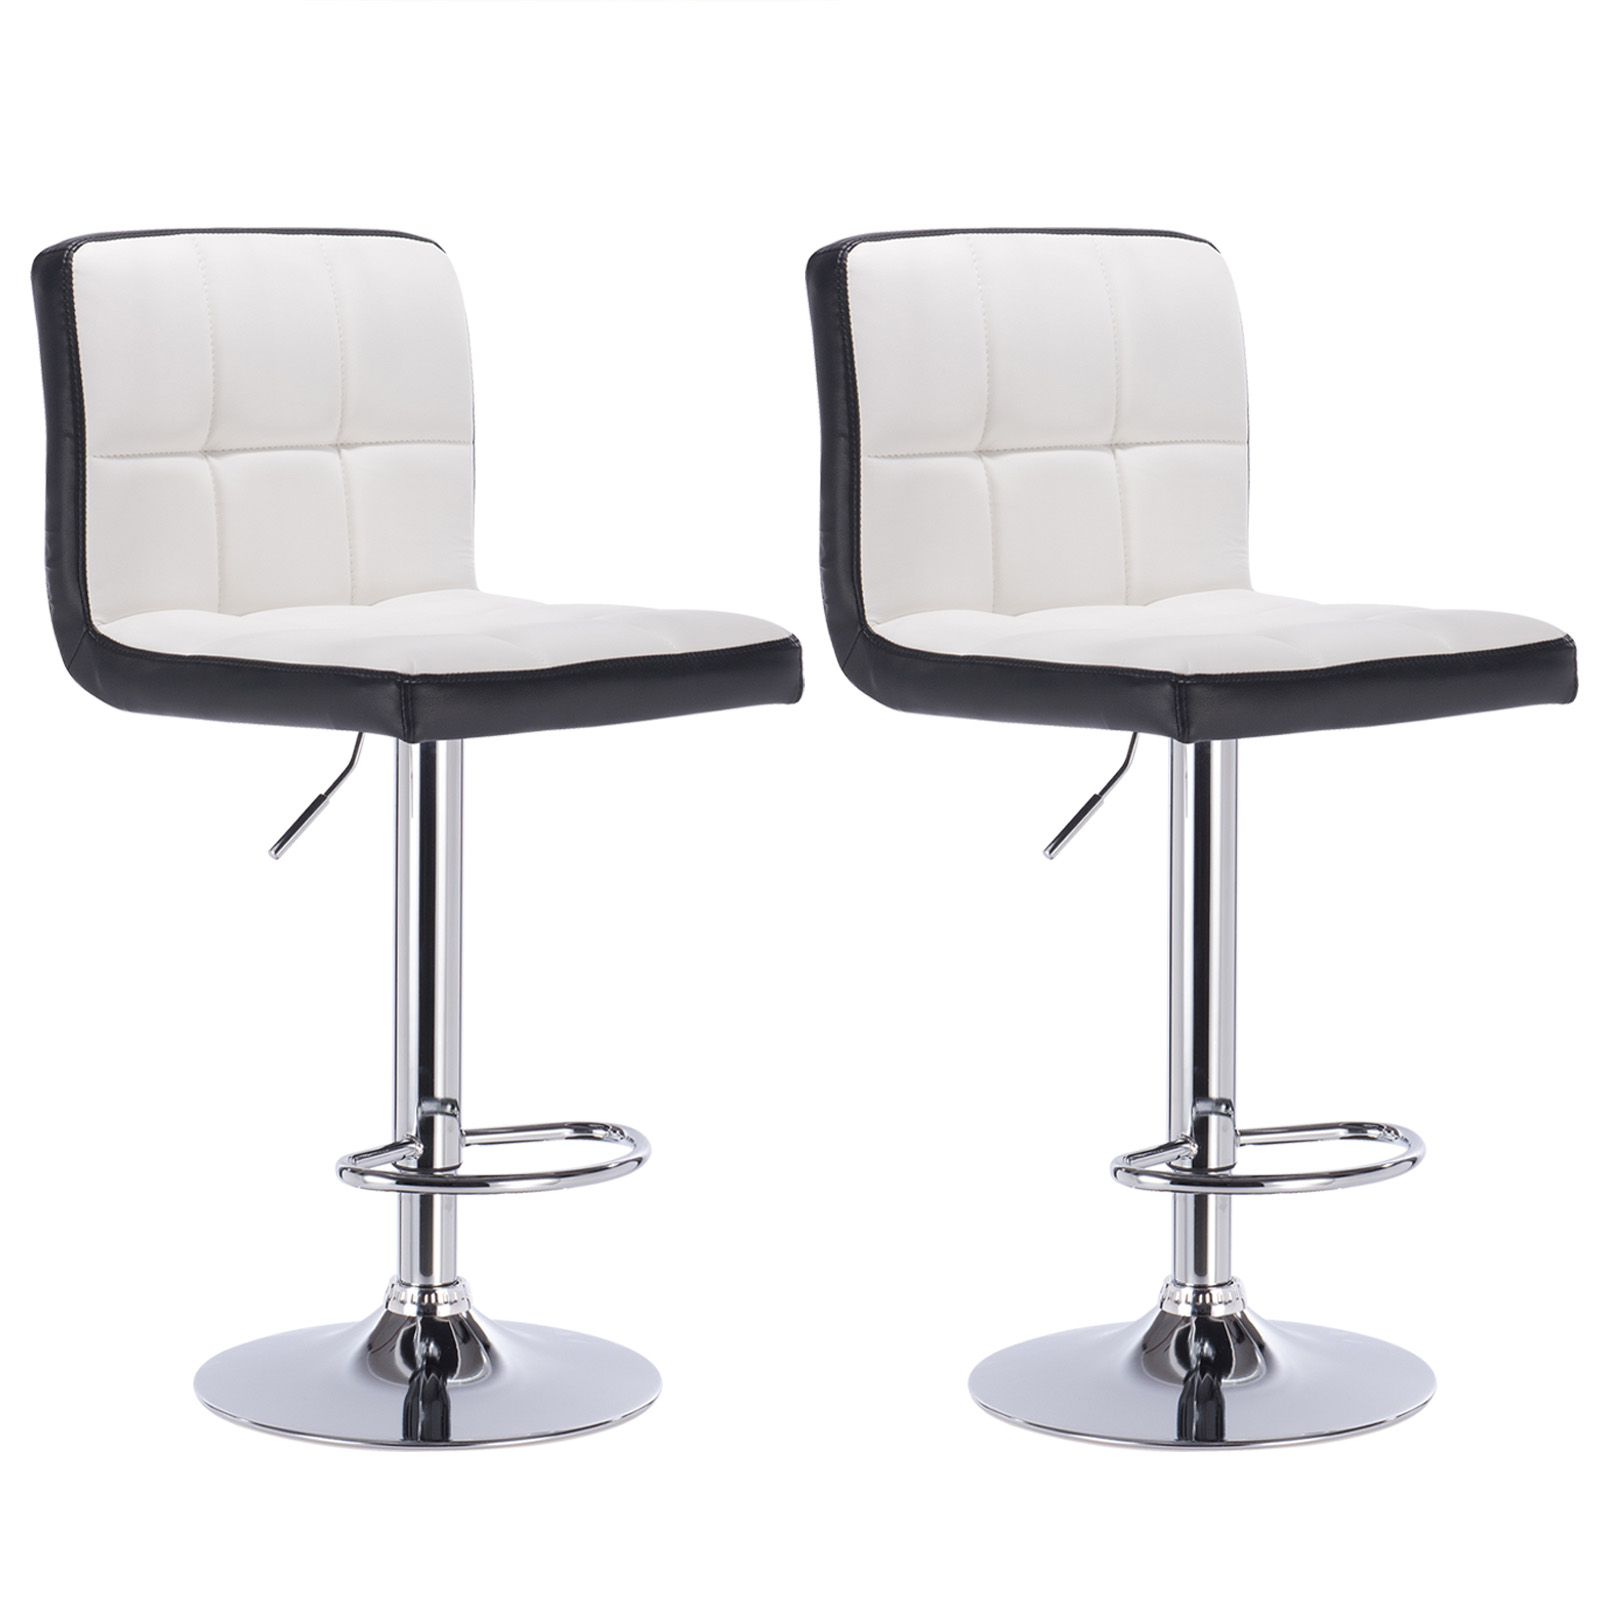 Bar Stools Swivel Kitchen Breakfast Bar Stool Set of 2 ...